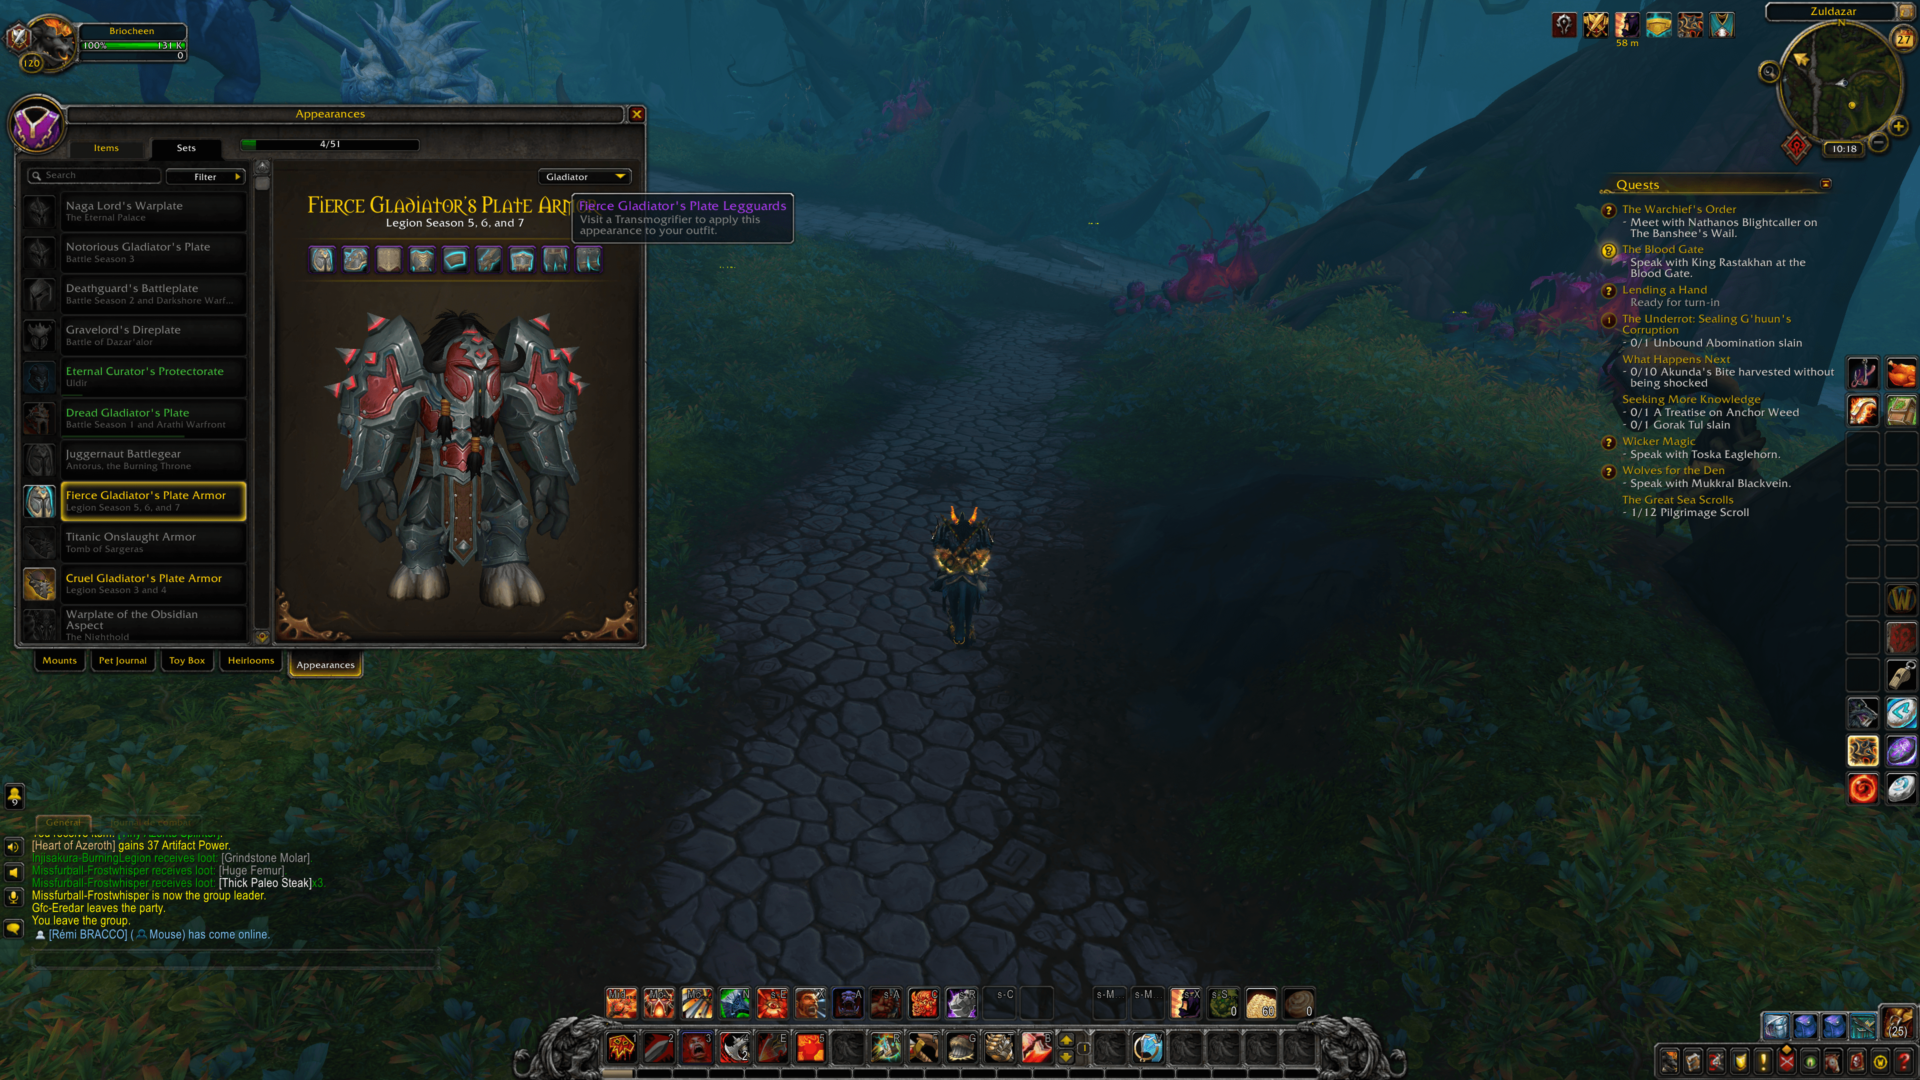 Appearances screenshot of World of Warcraft video game interface.